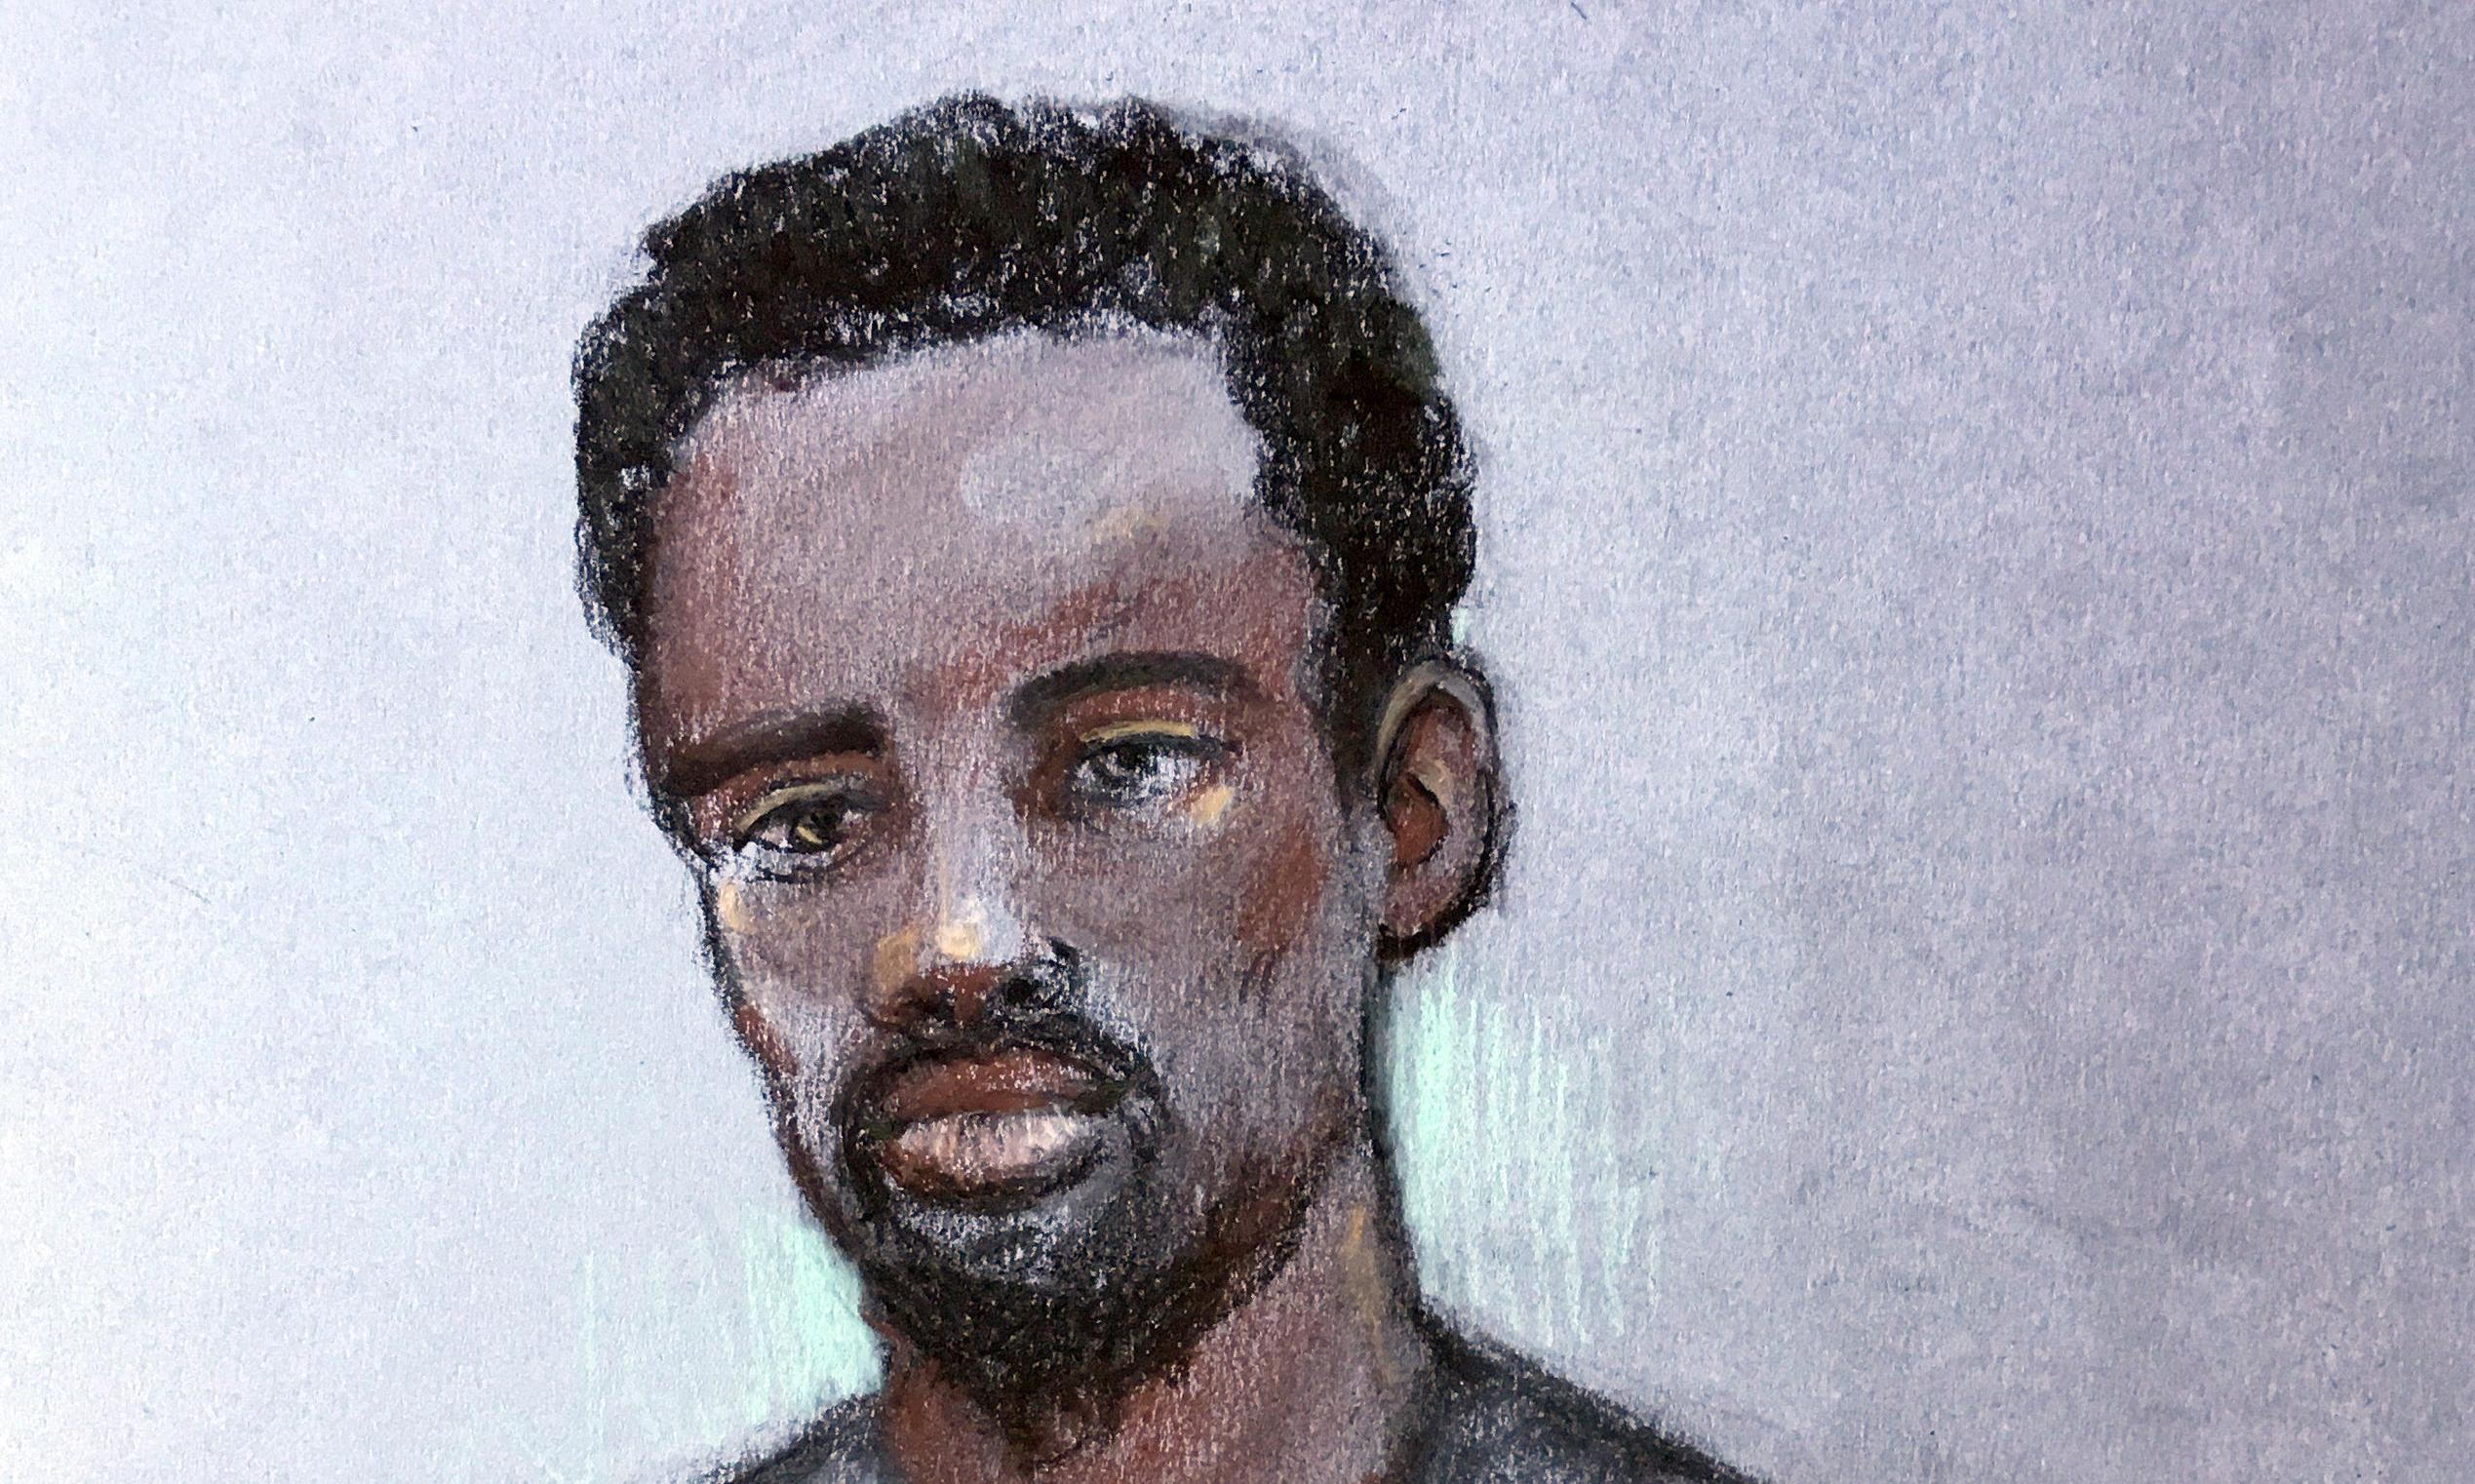 Kasim Lewis pleads guilty to killing second woman in north London